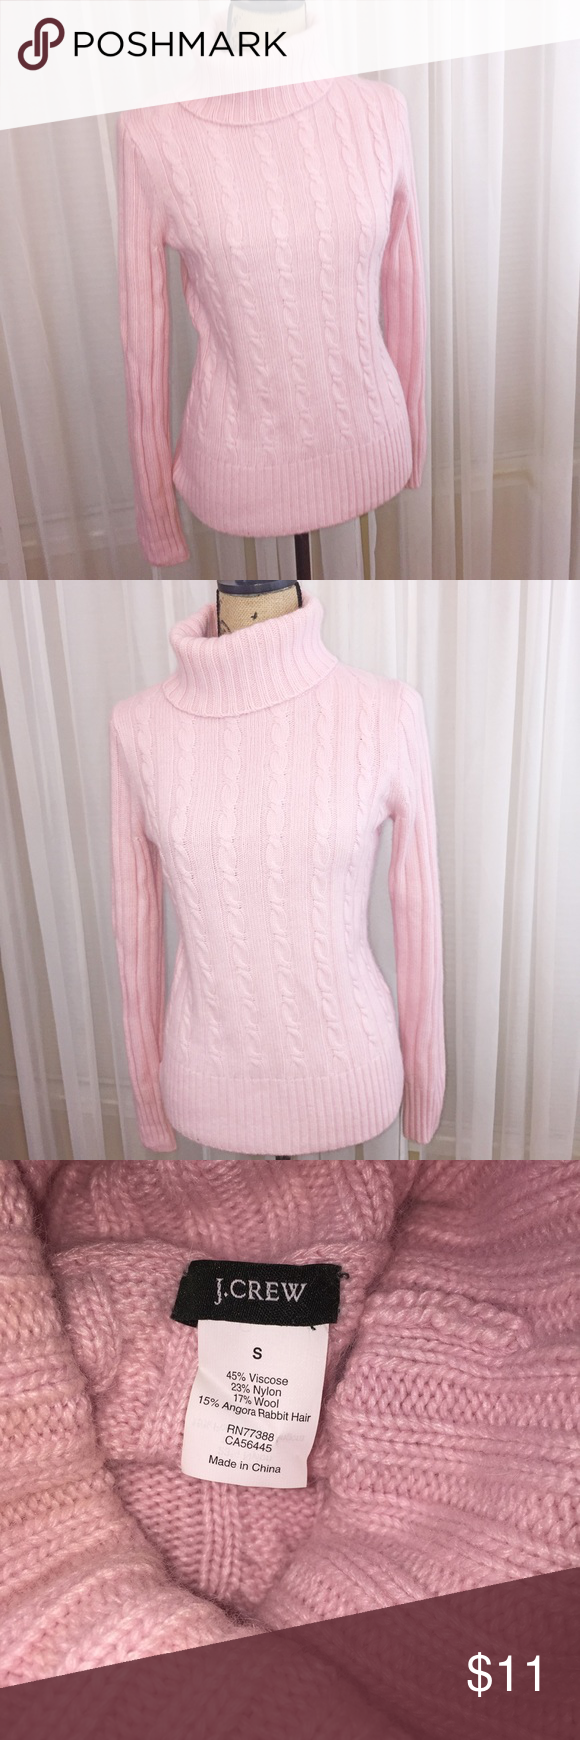 Wintertime perfection J. Crew sweater Baby pink sweater. High neck, warm material. Wool, viscose, and rabbit hair blend. J. Crew Sweaters